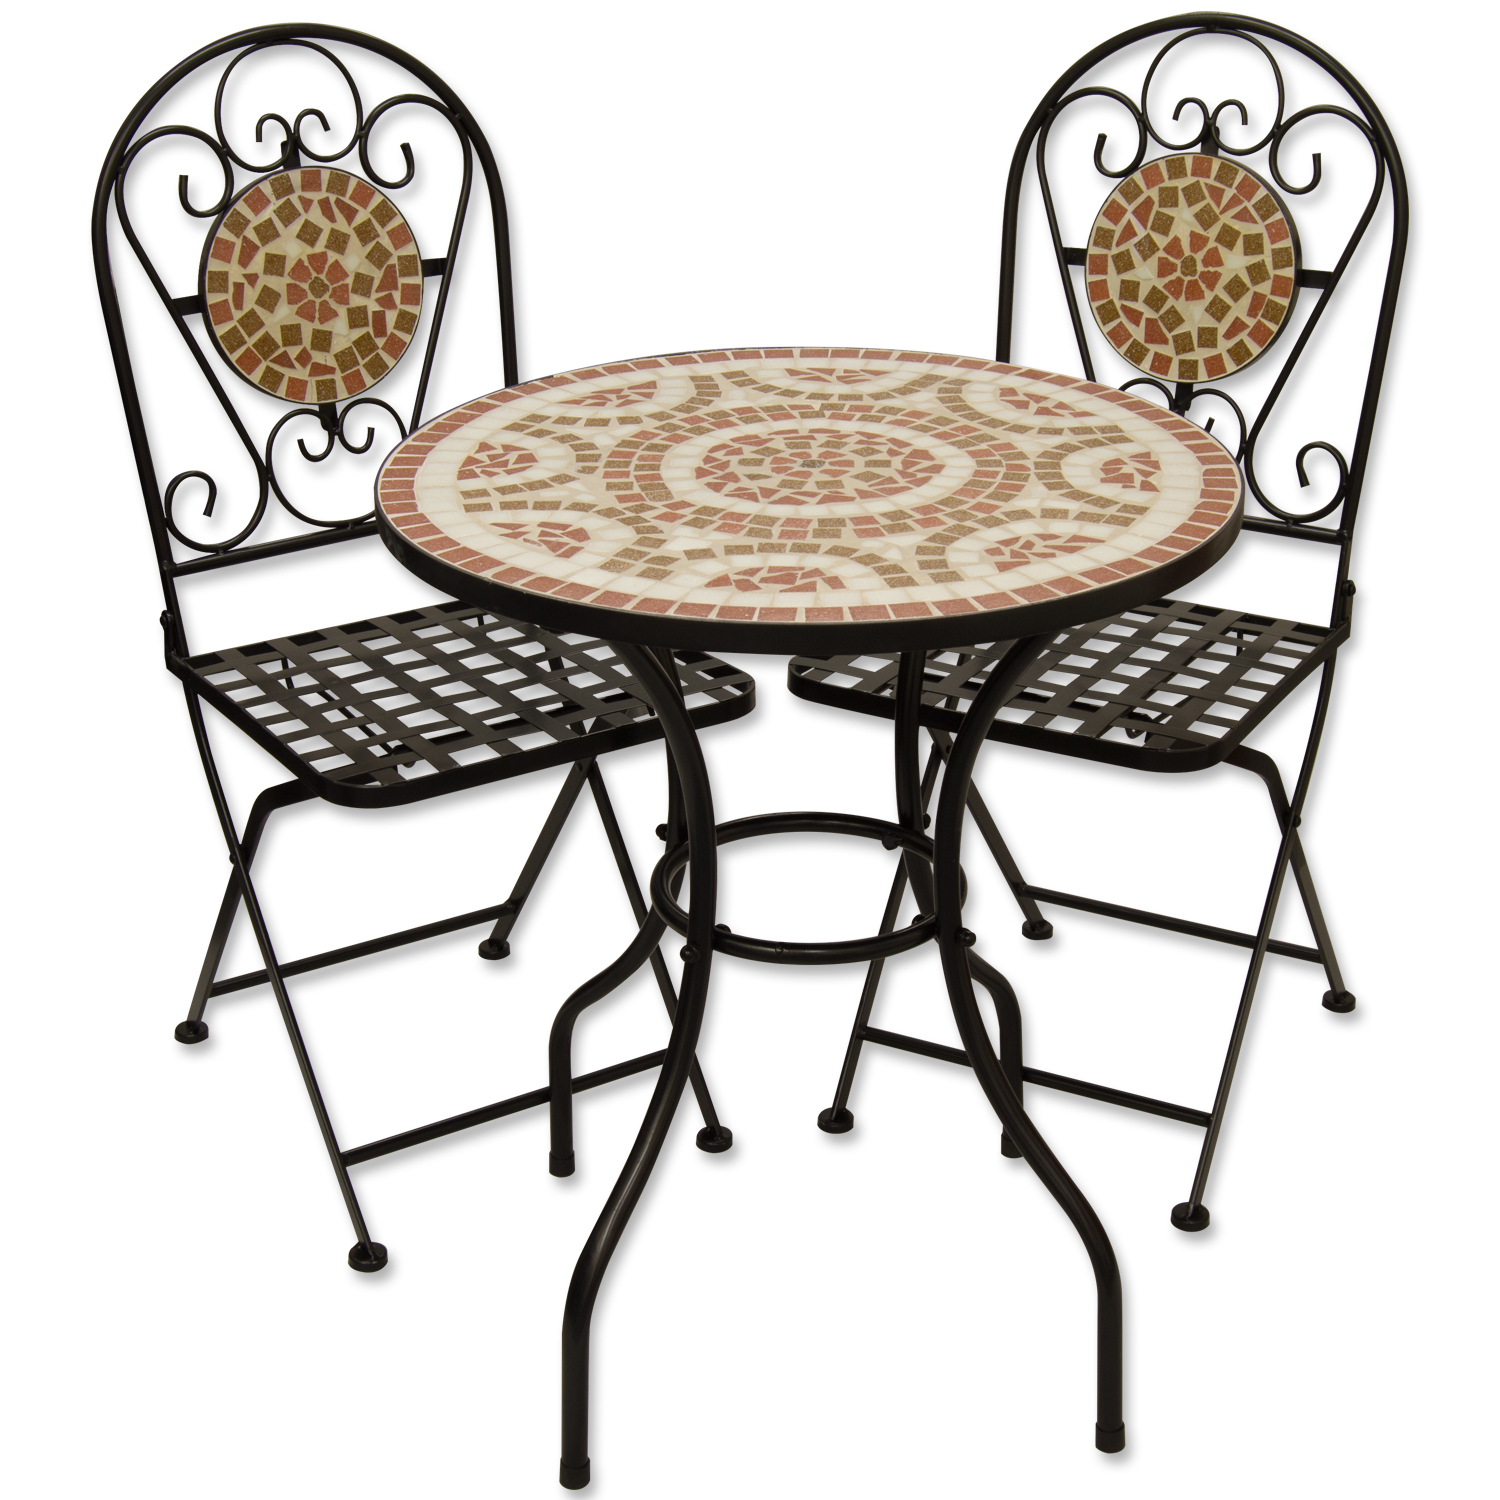 Mosaic Outdoor Dining Garden Table And Folding Chair Set  : W441 TWoodside1 from www.ebay.co.uk size 1500 x 1500 jpeg 799kB